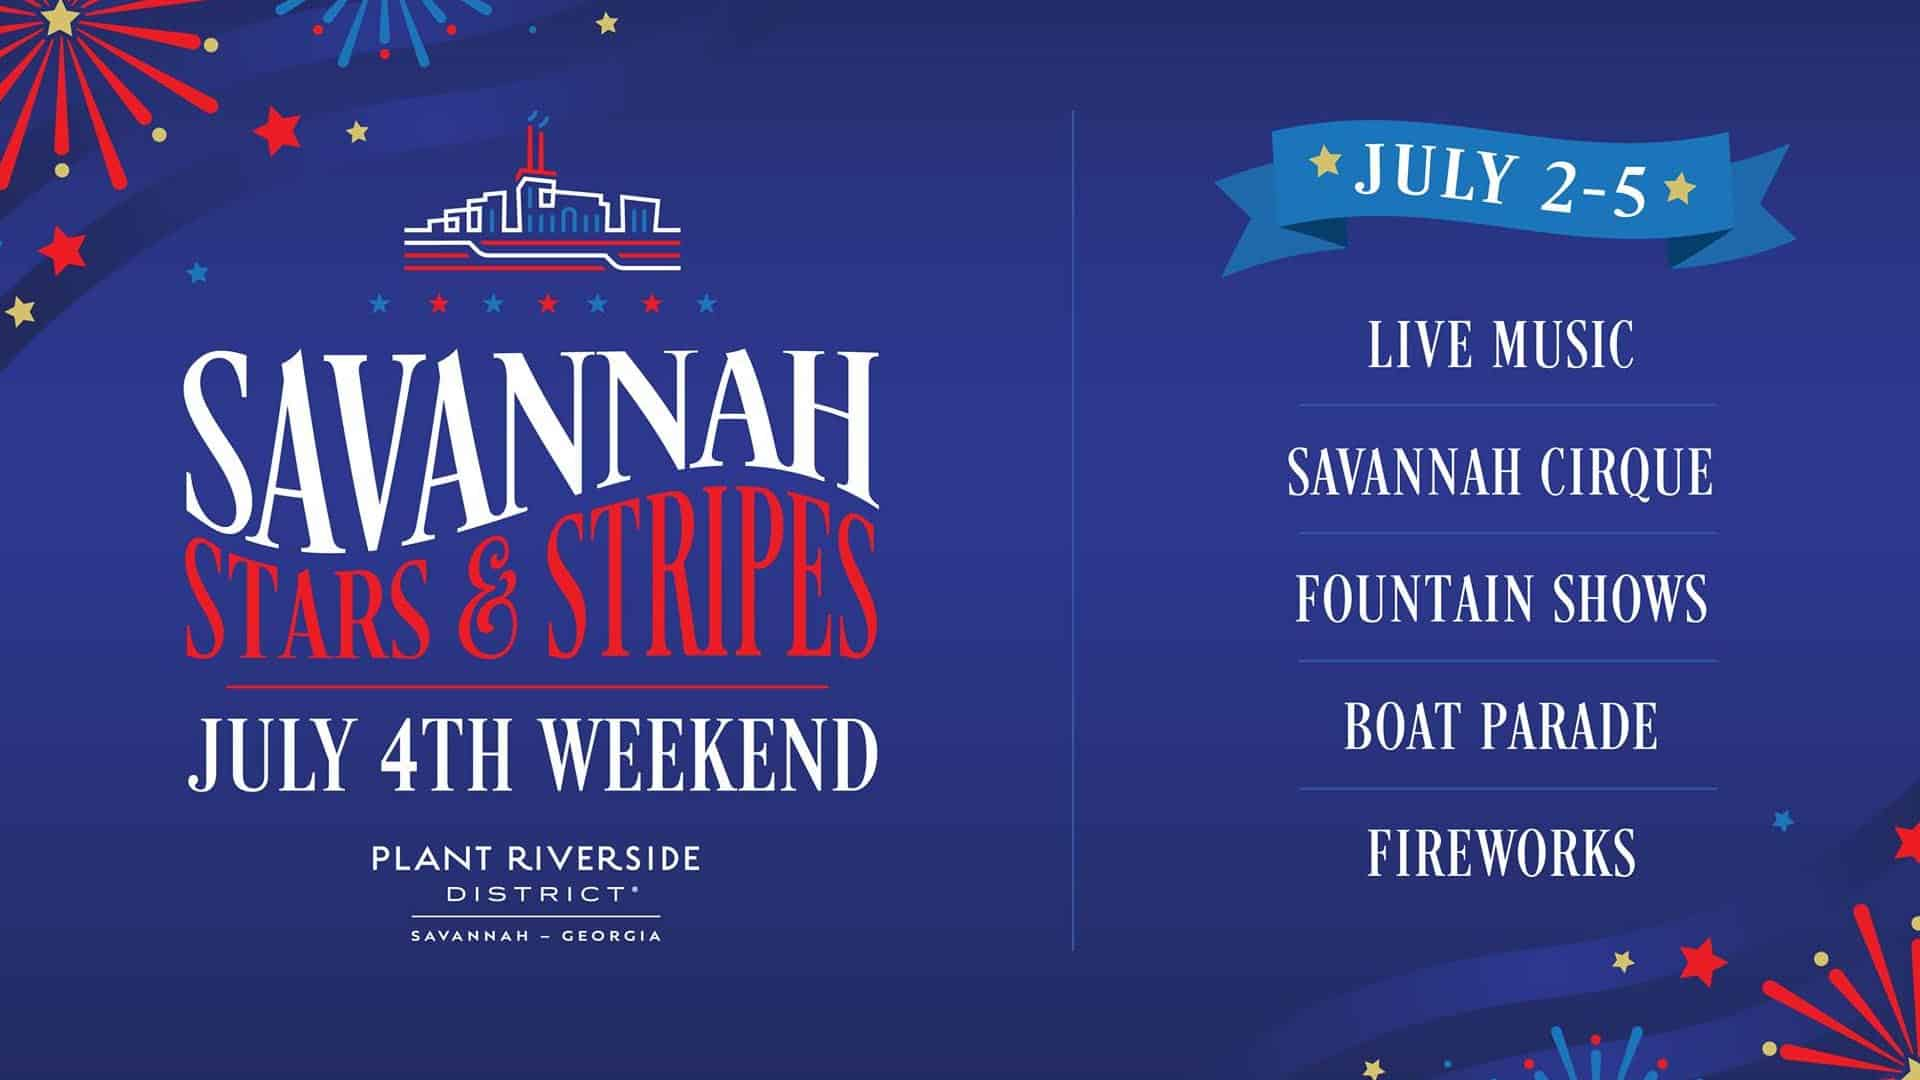 Things to do on the 4th of July in Savannah